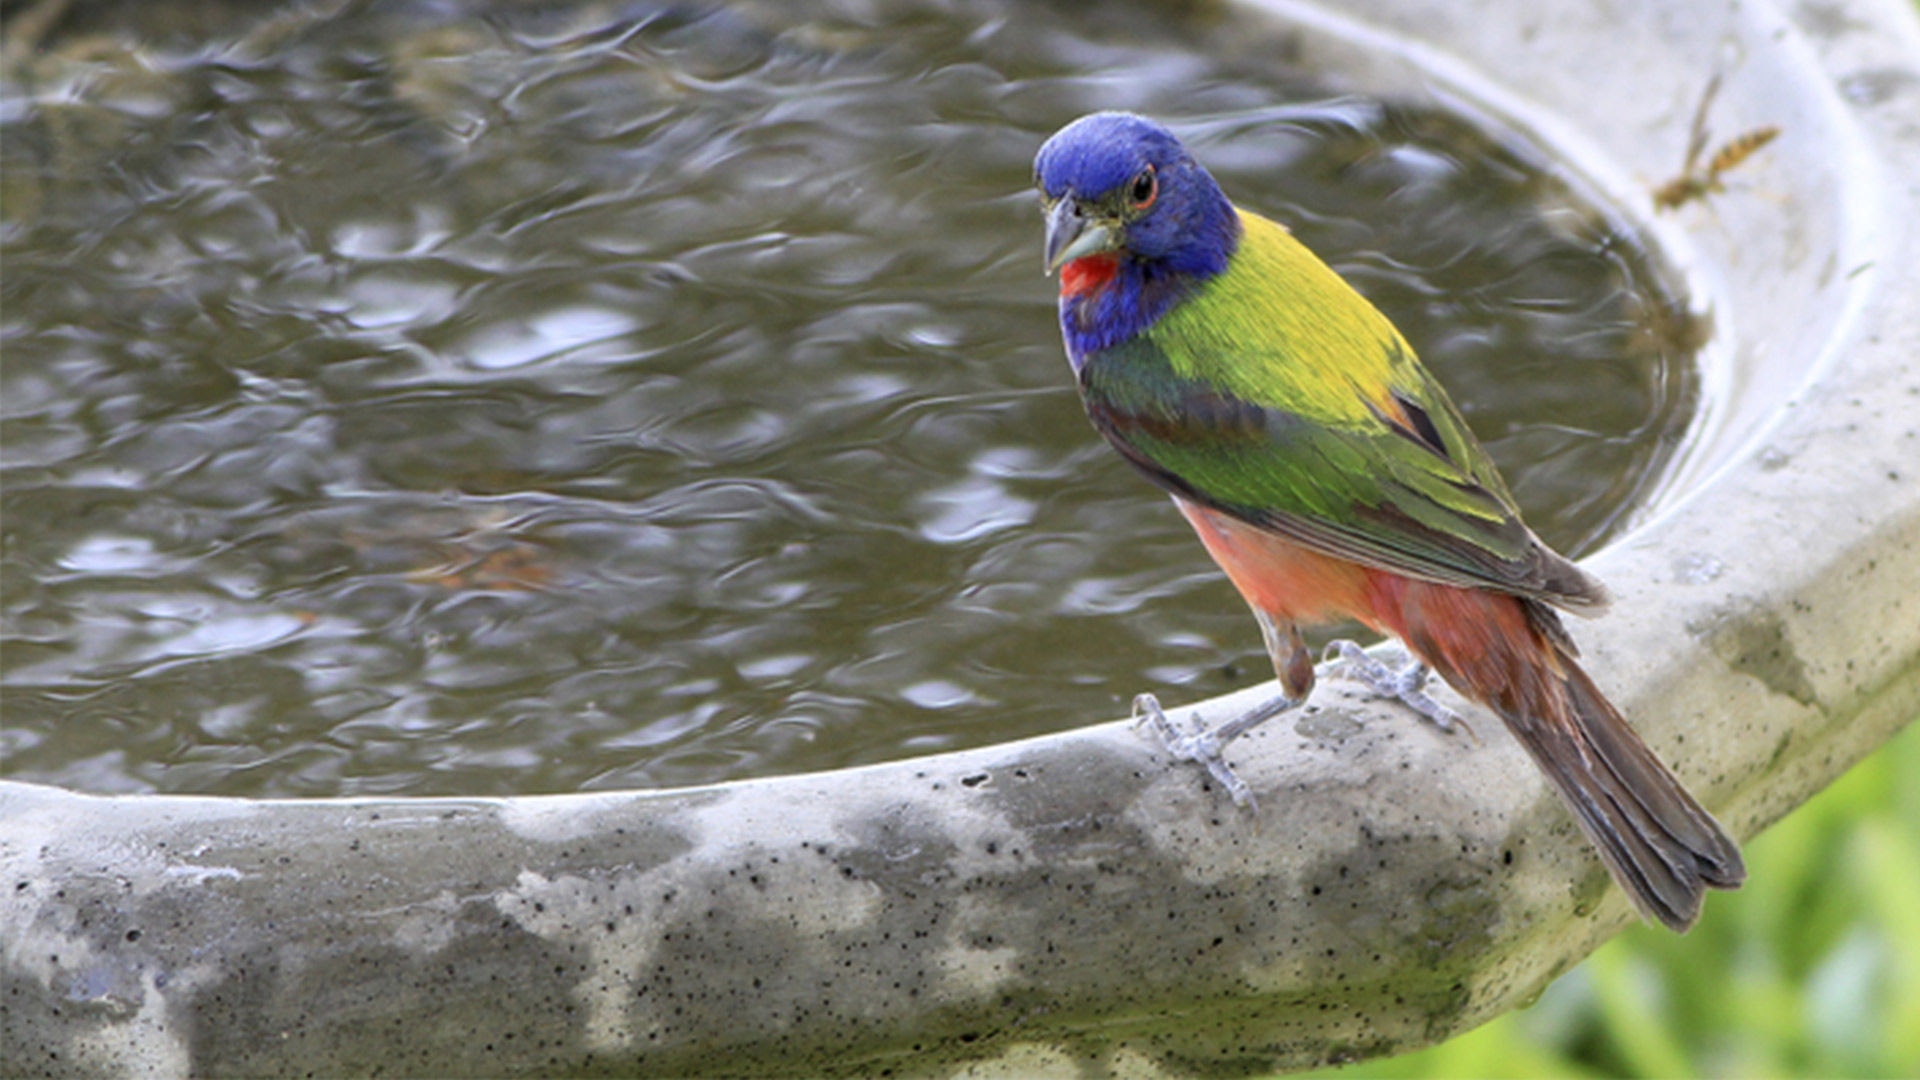 Painted bunting at edge of birdbath.